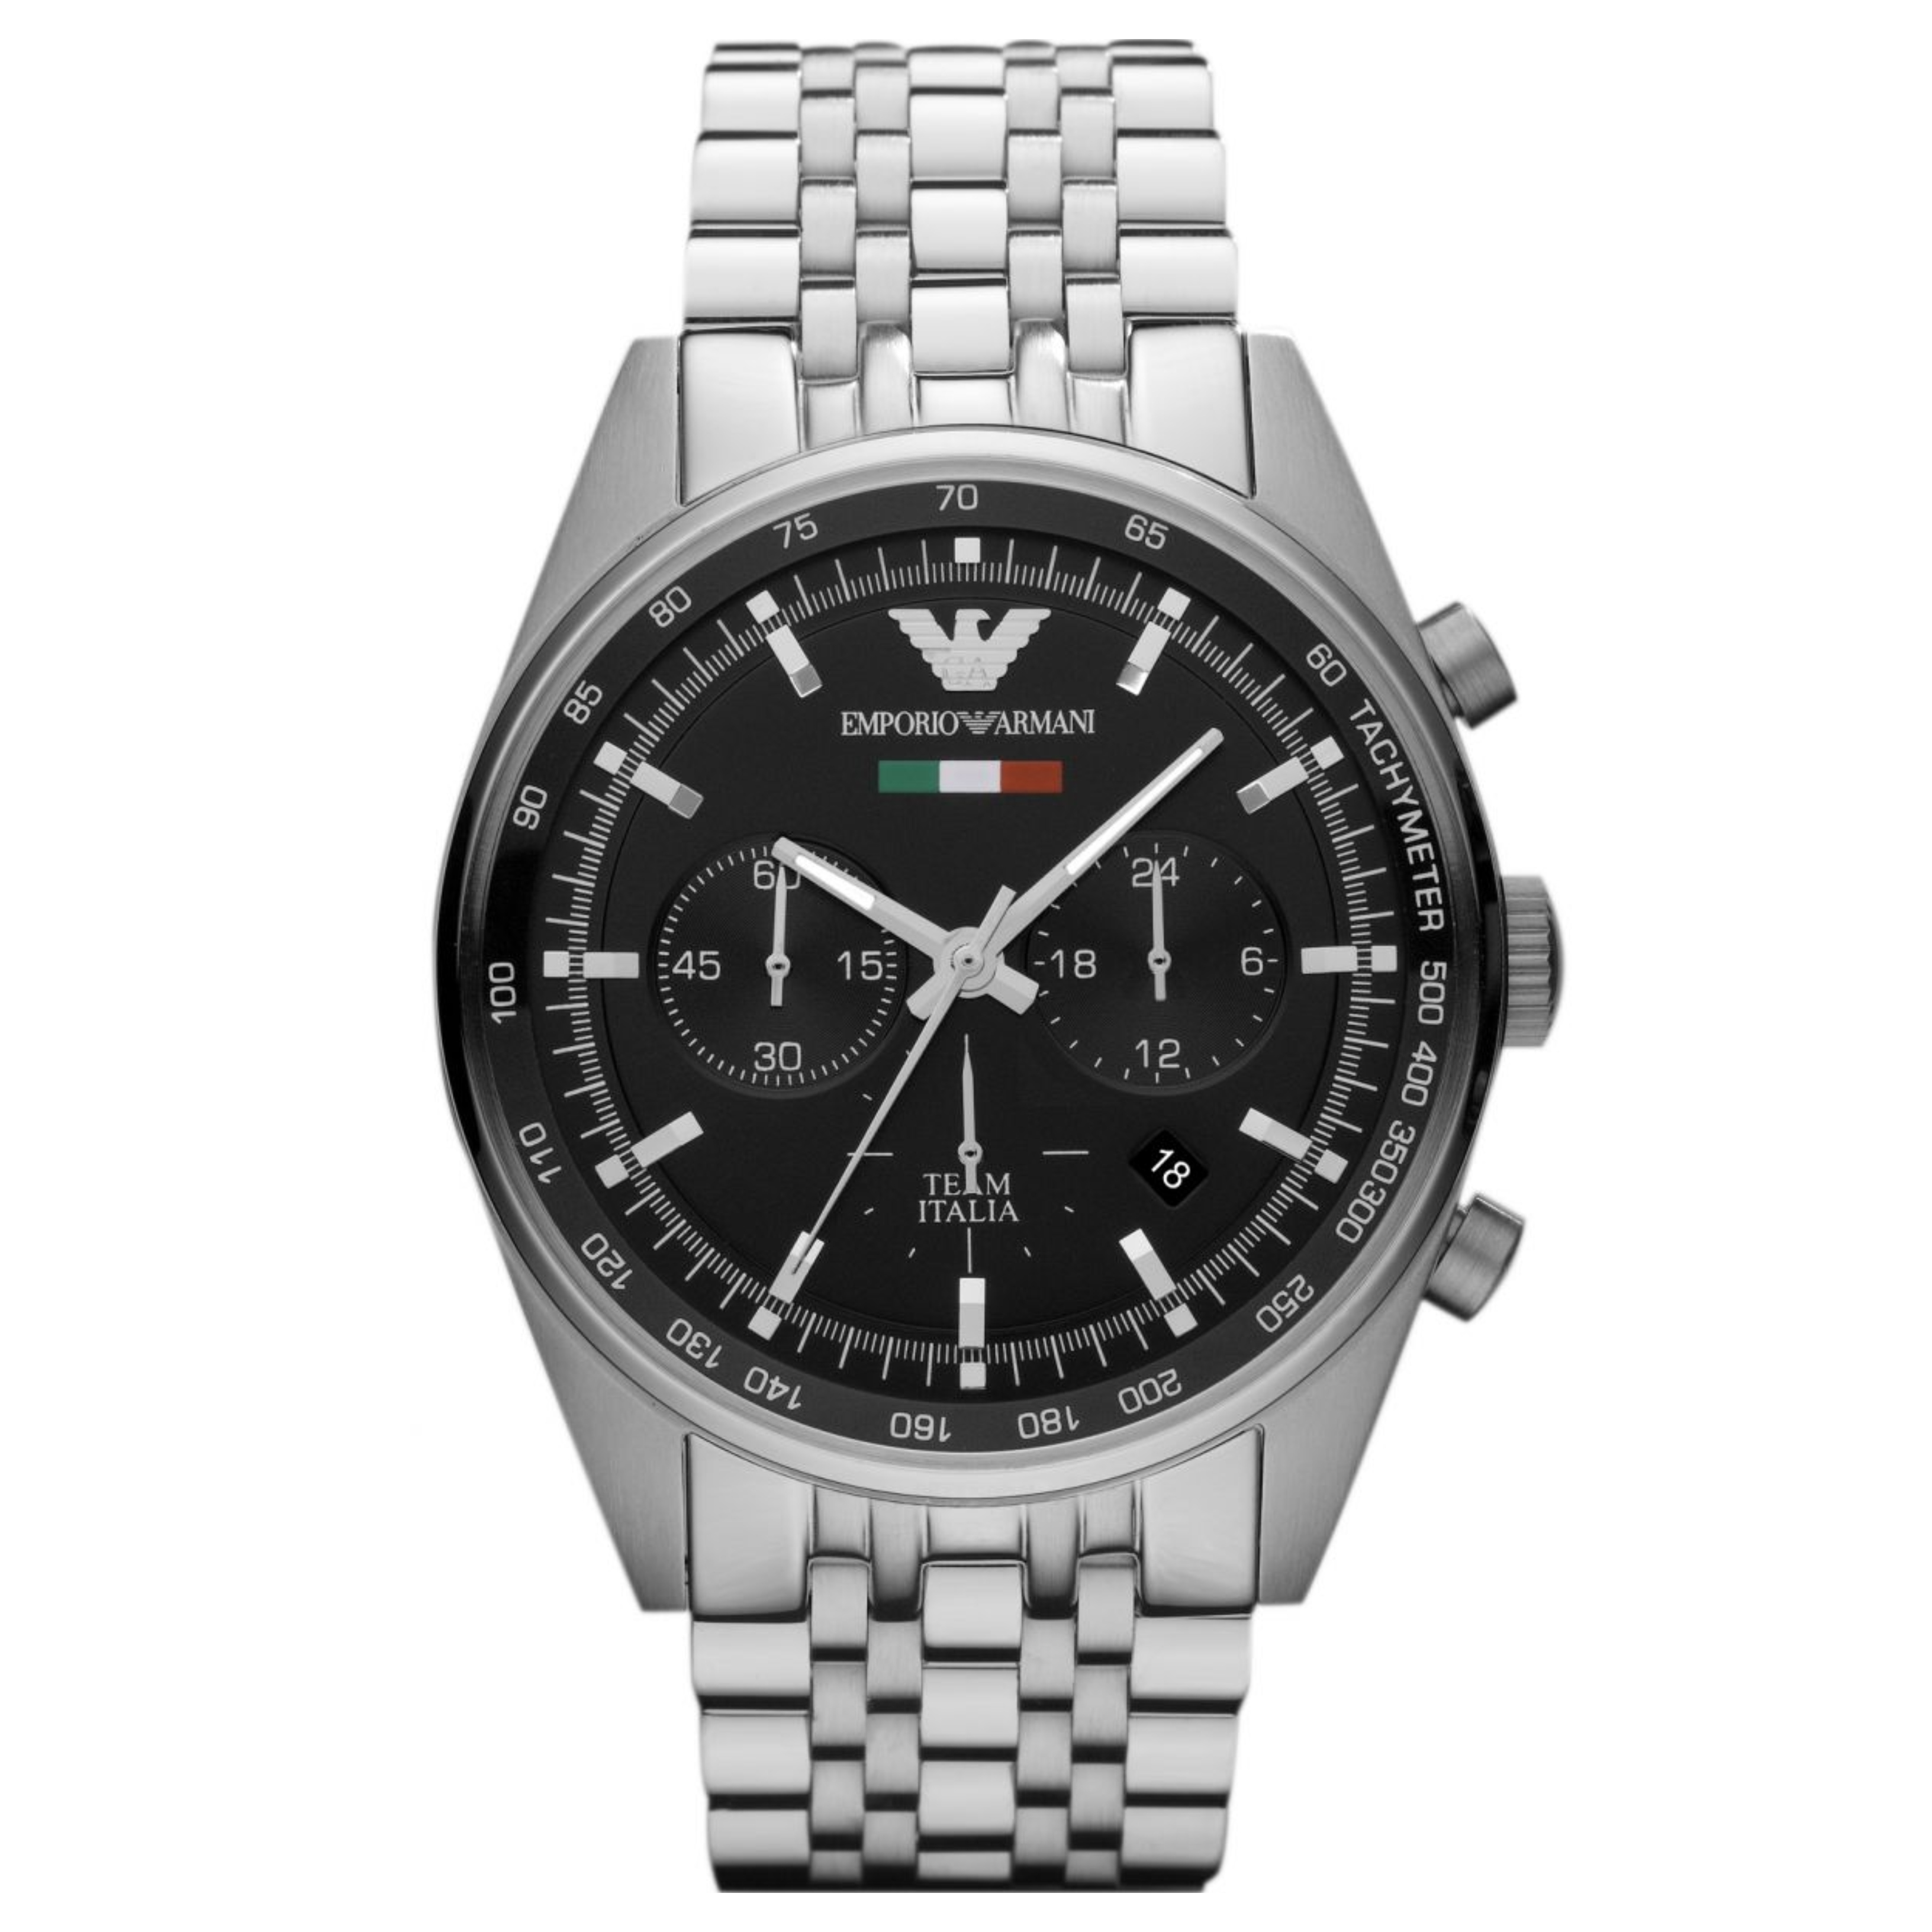 Emporio Armani Men's Sportivo Watch AR5983?Chronograph Black Dial?Stainless Band